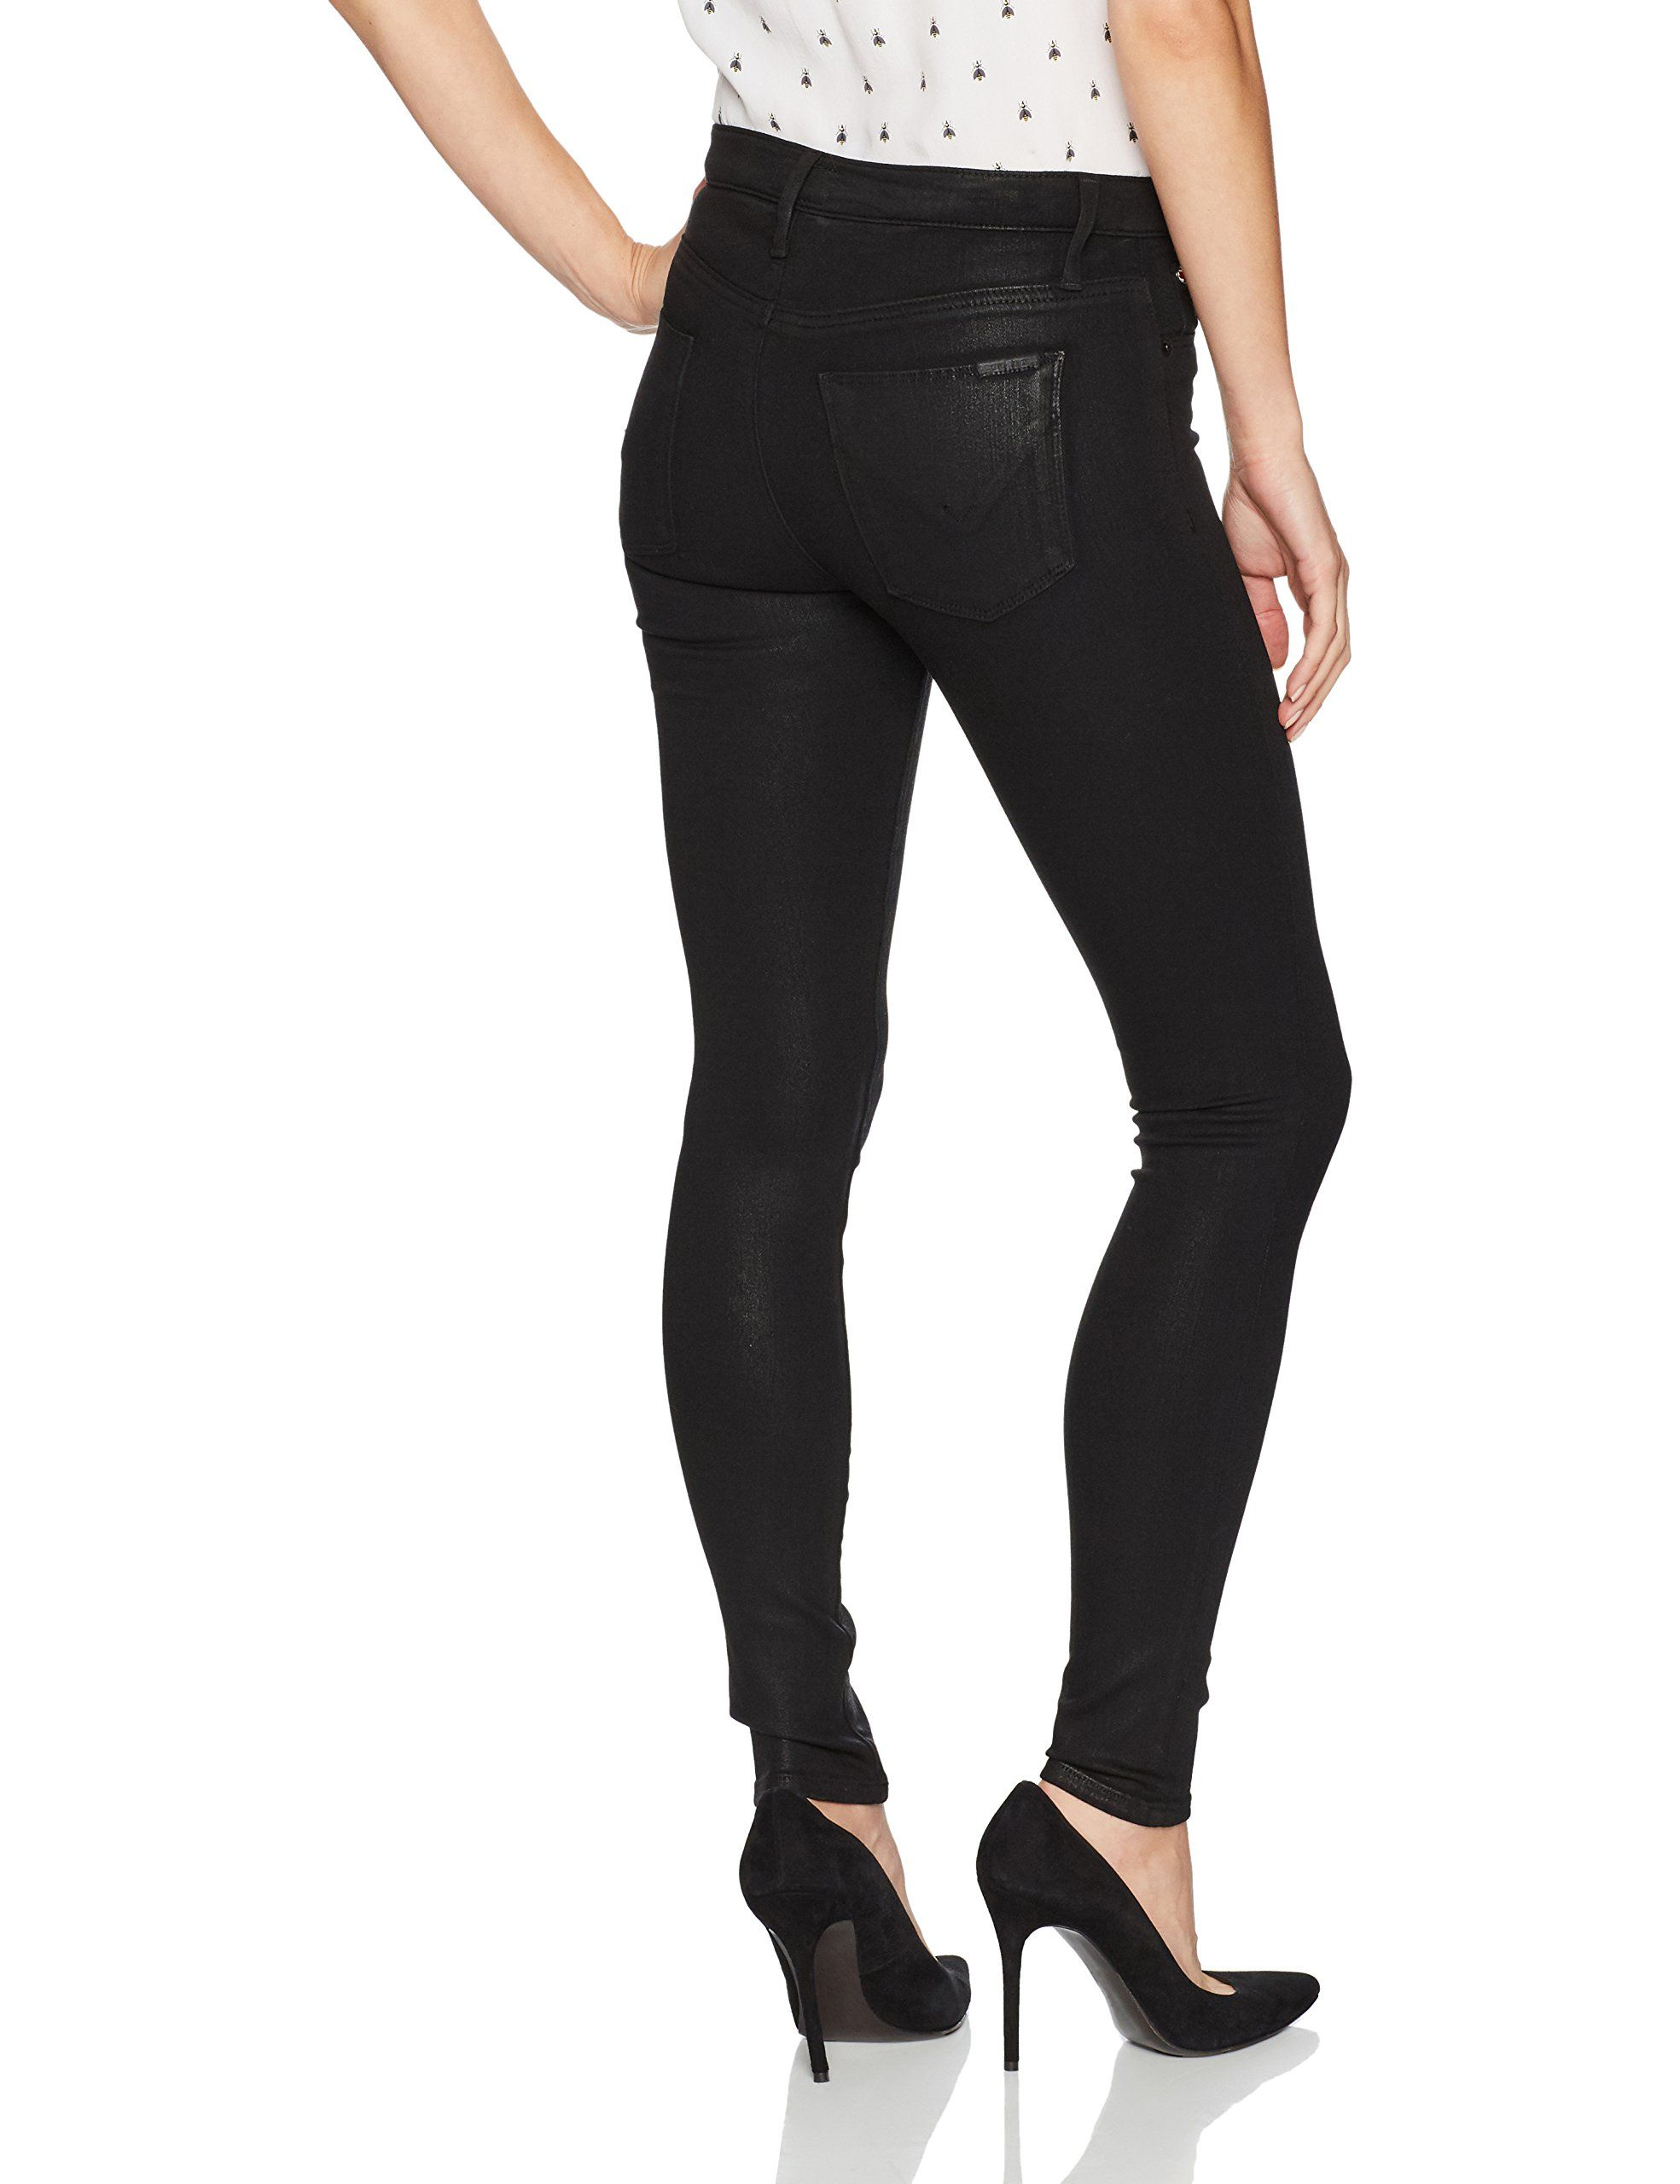 020078df5 Hudson Jeans Womens Nico Midrise Super Skinny Black Coated Noir 27 ***  Learn more by visiting the image link. (This is an affiliate link)  #fashionjeans